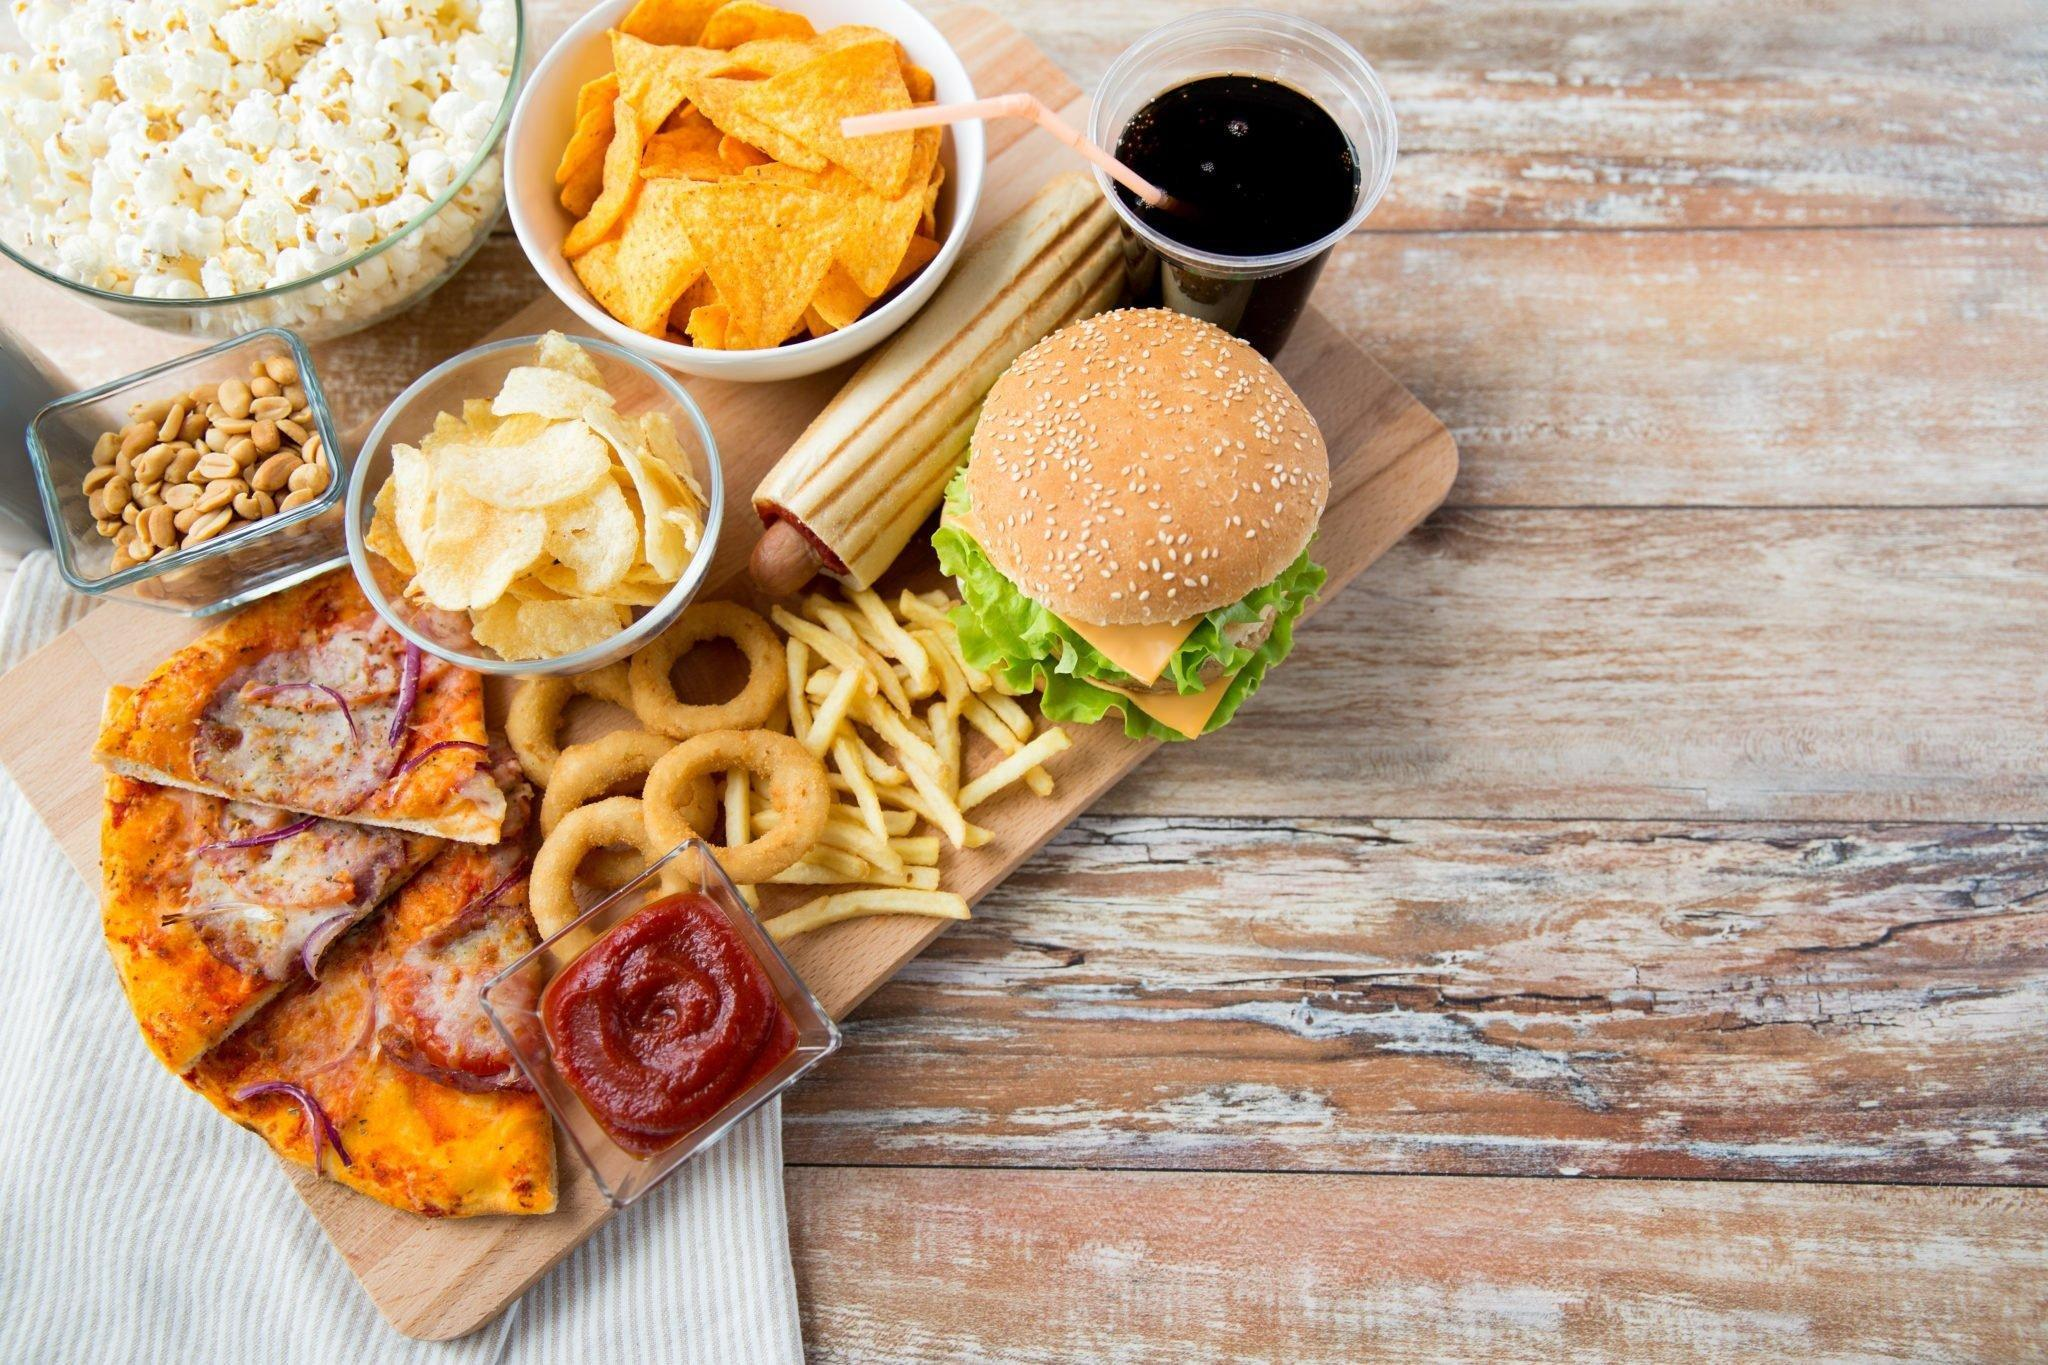 Worst Fast Food For Diabetics